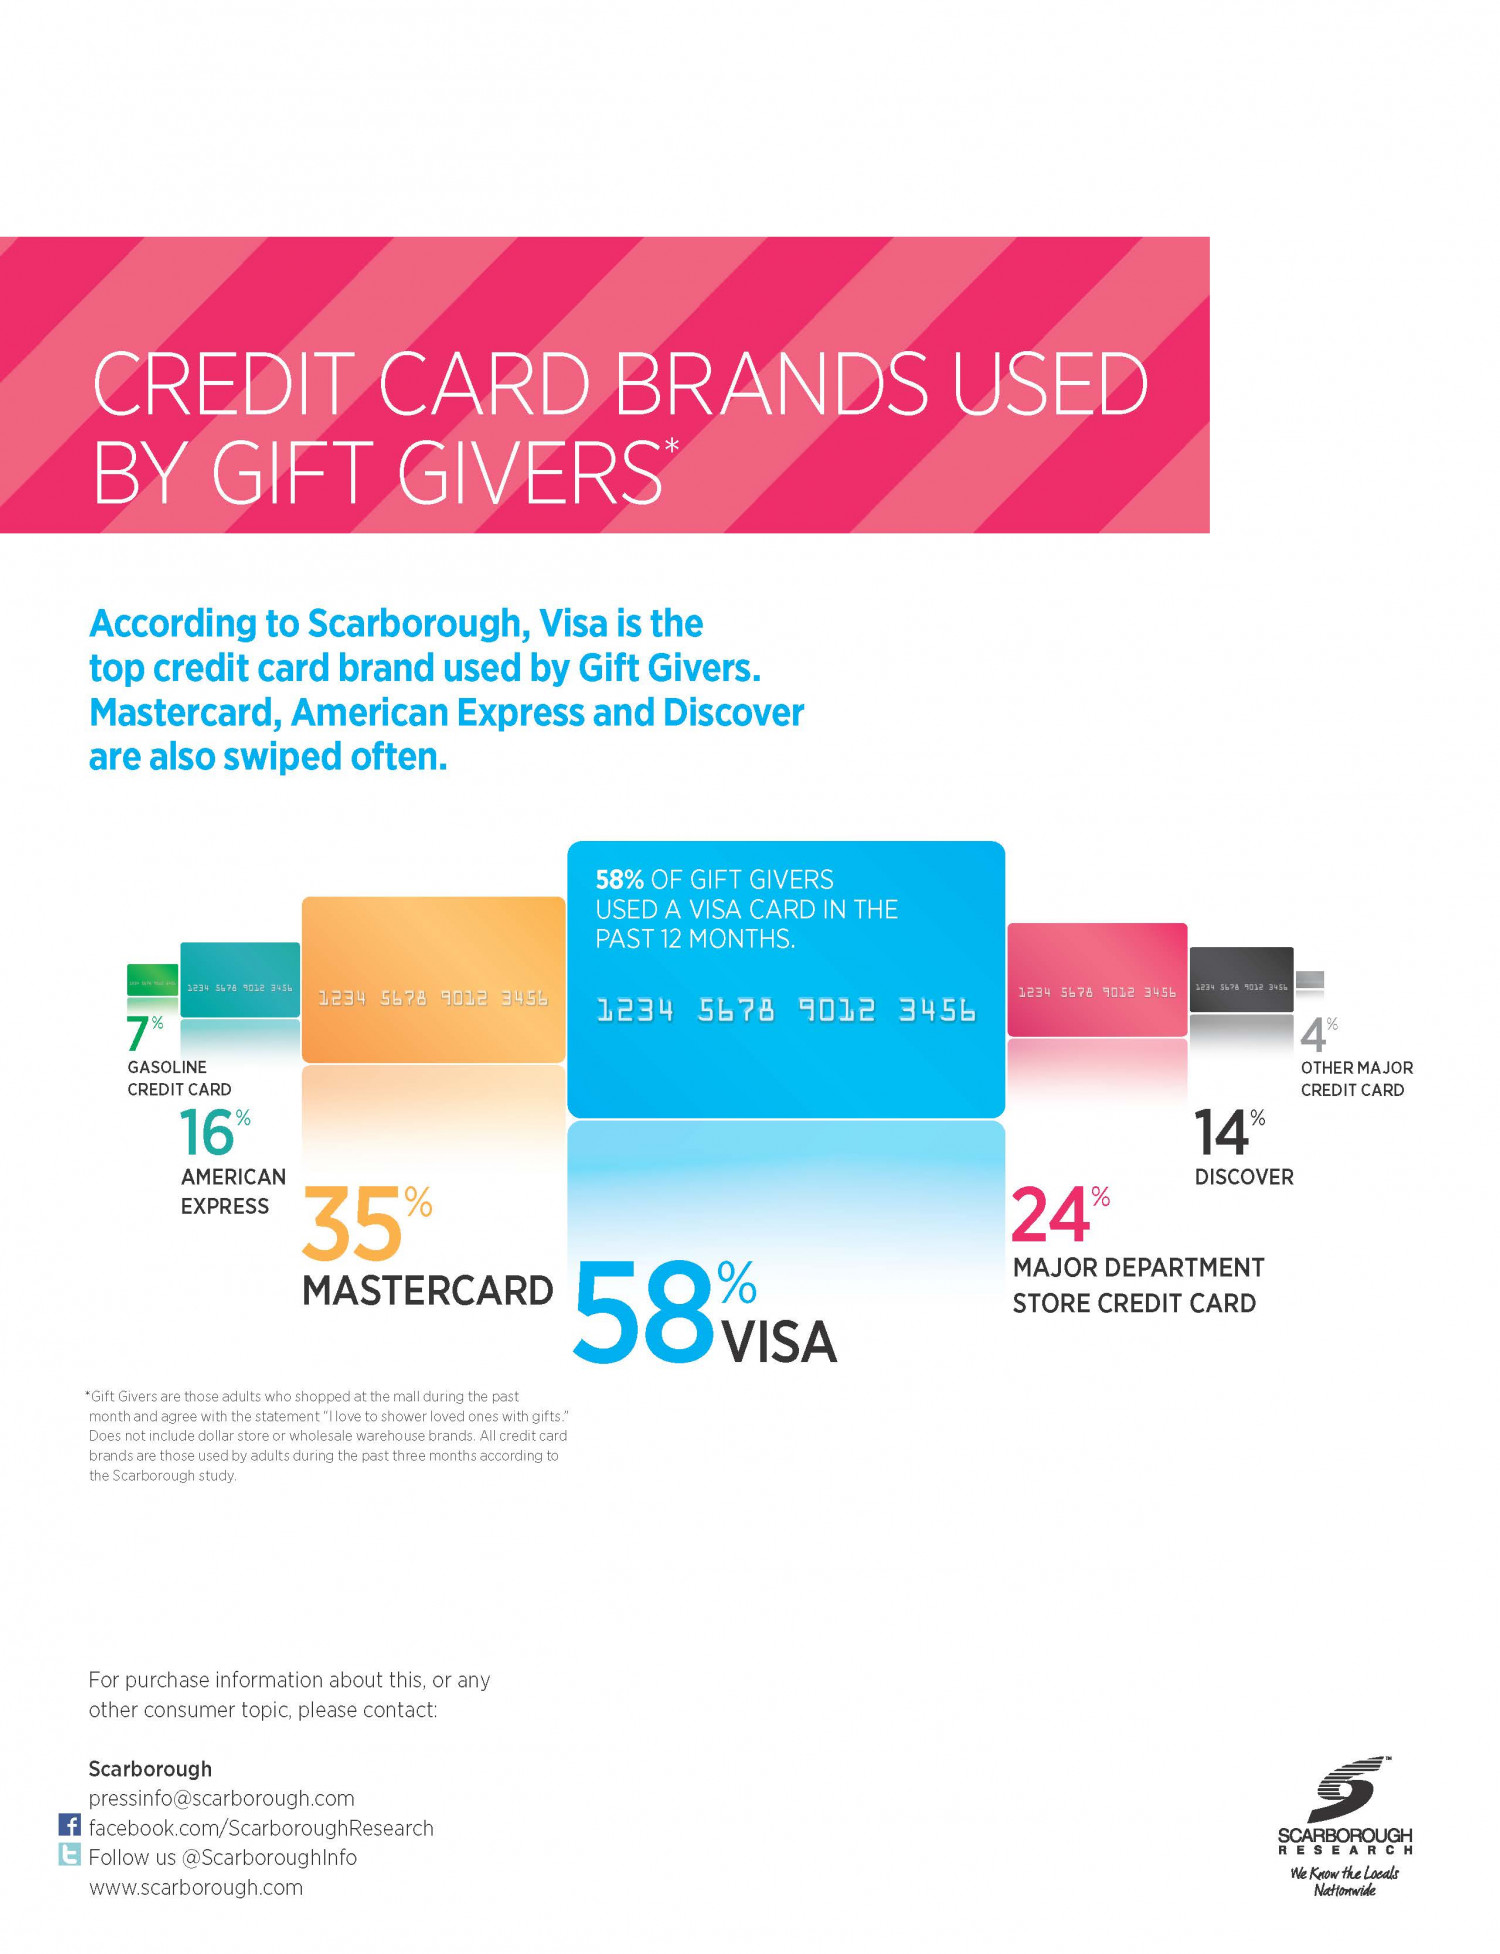 Scarborough Gift Givers Credit Card Usage Infographic